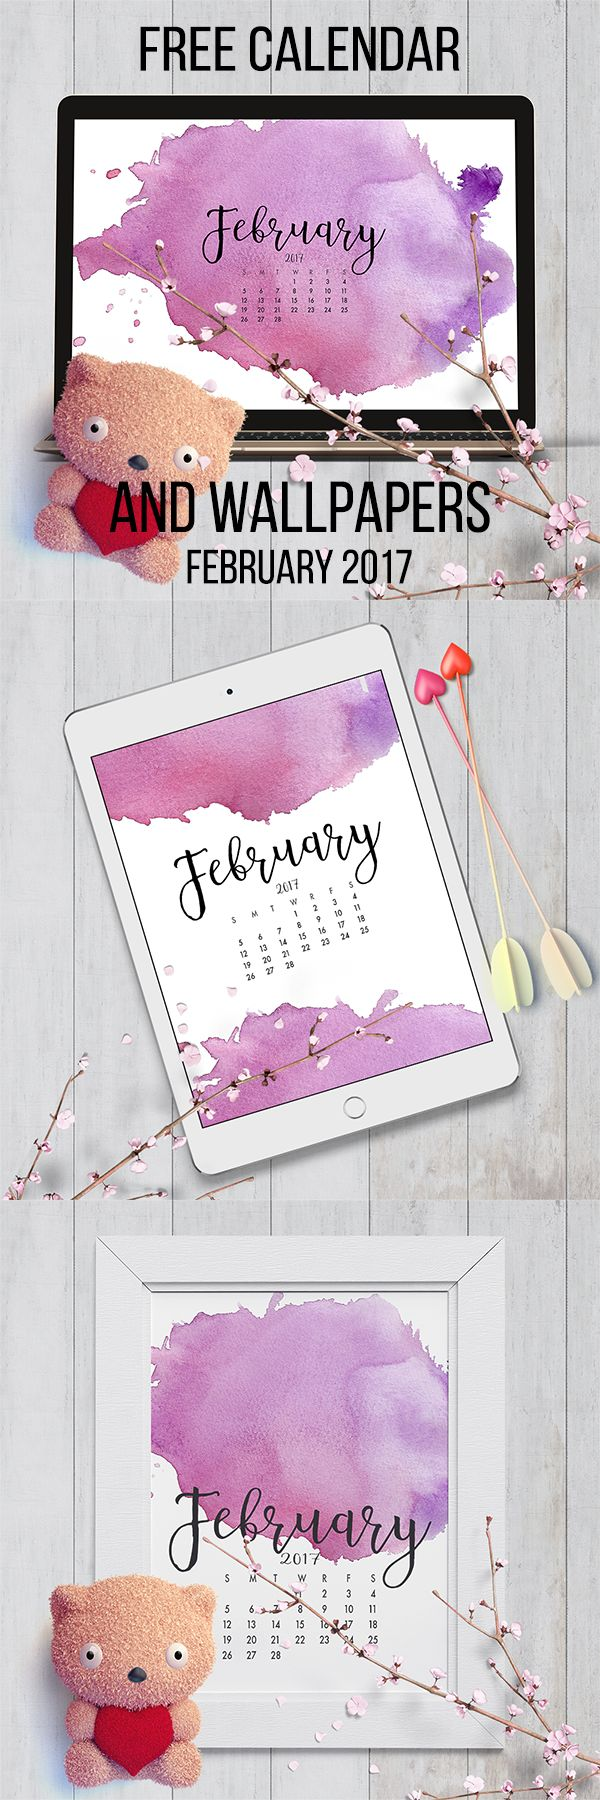 February 2017 Free Calendar and Wallpapers